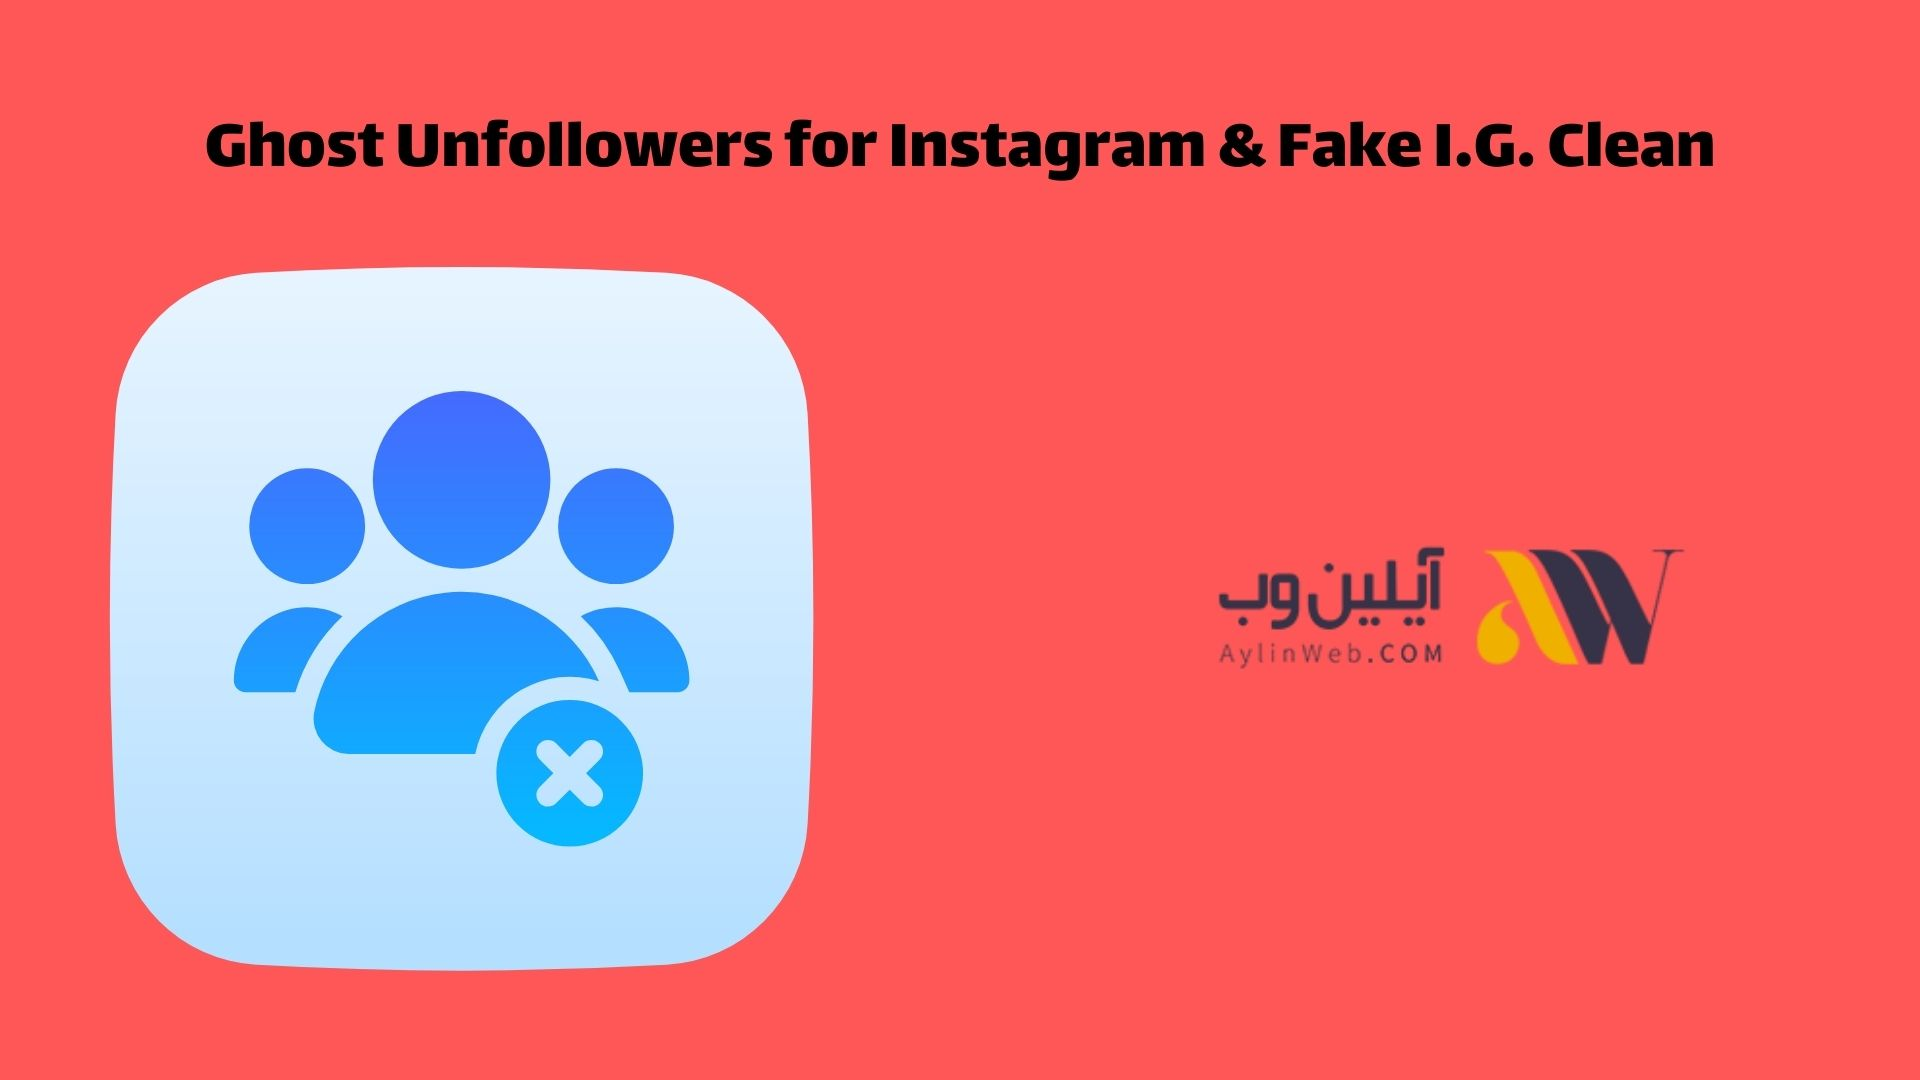 Ghost Unfollowers for Instagram & Fake I.G. Clean